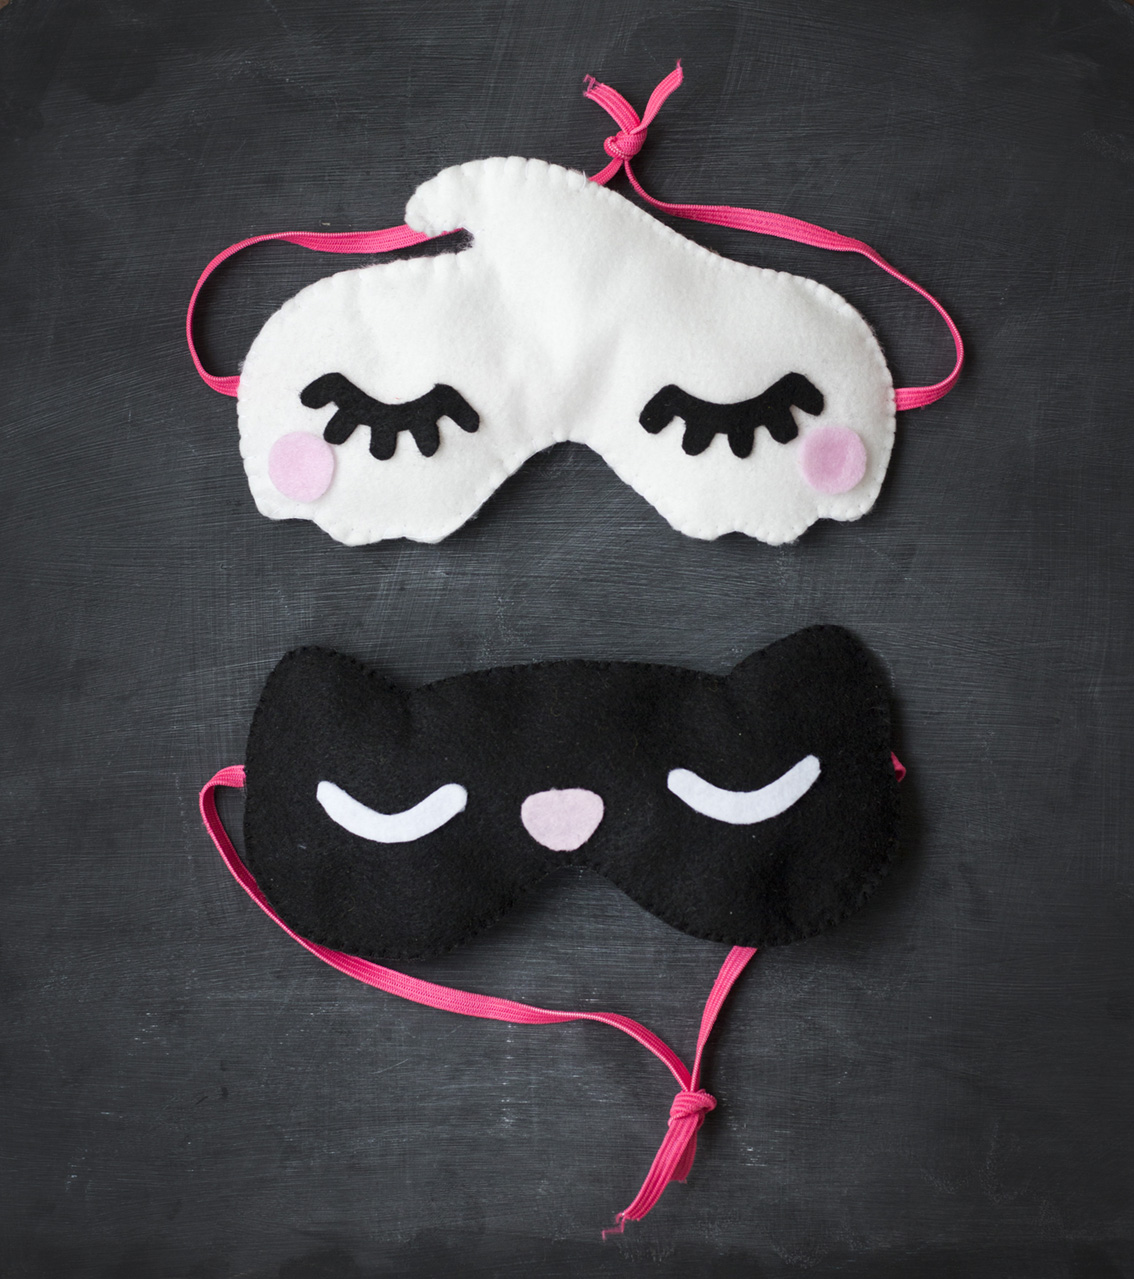 Halloween Sleeping Masks | Pysselbolaget